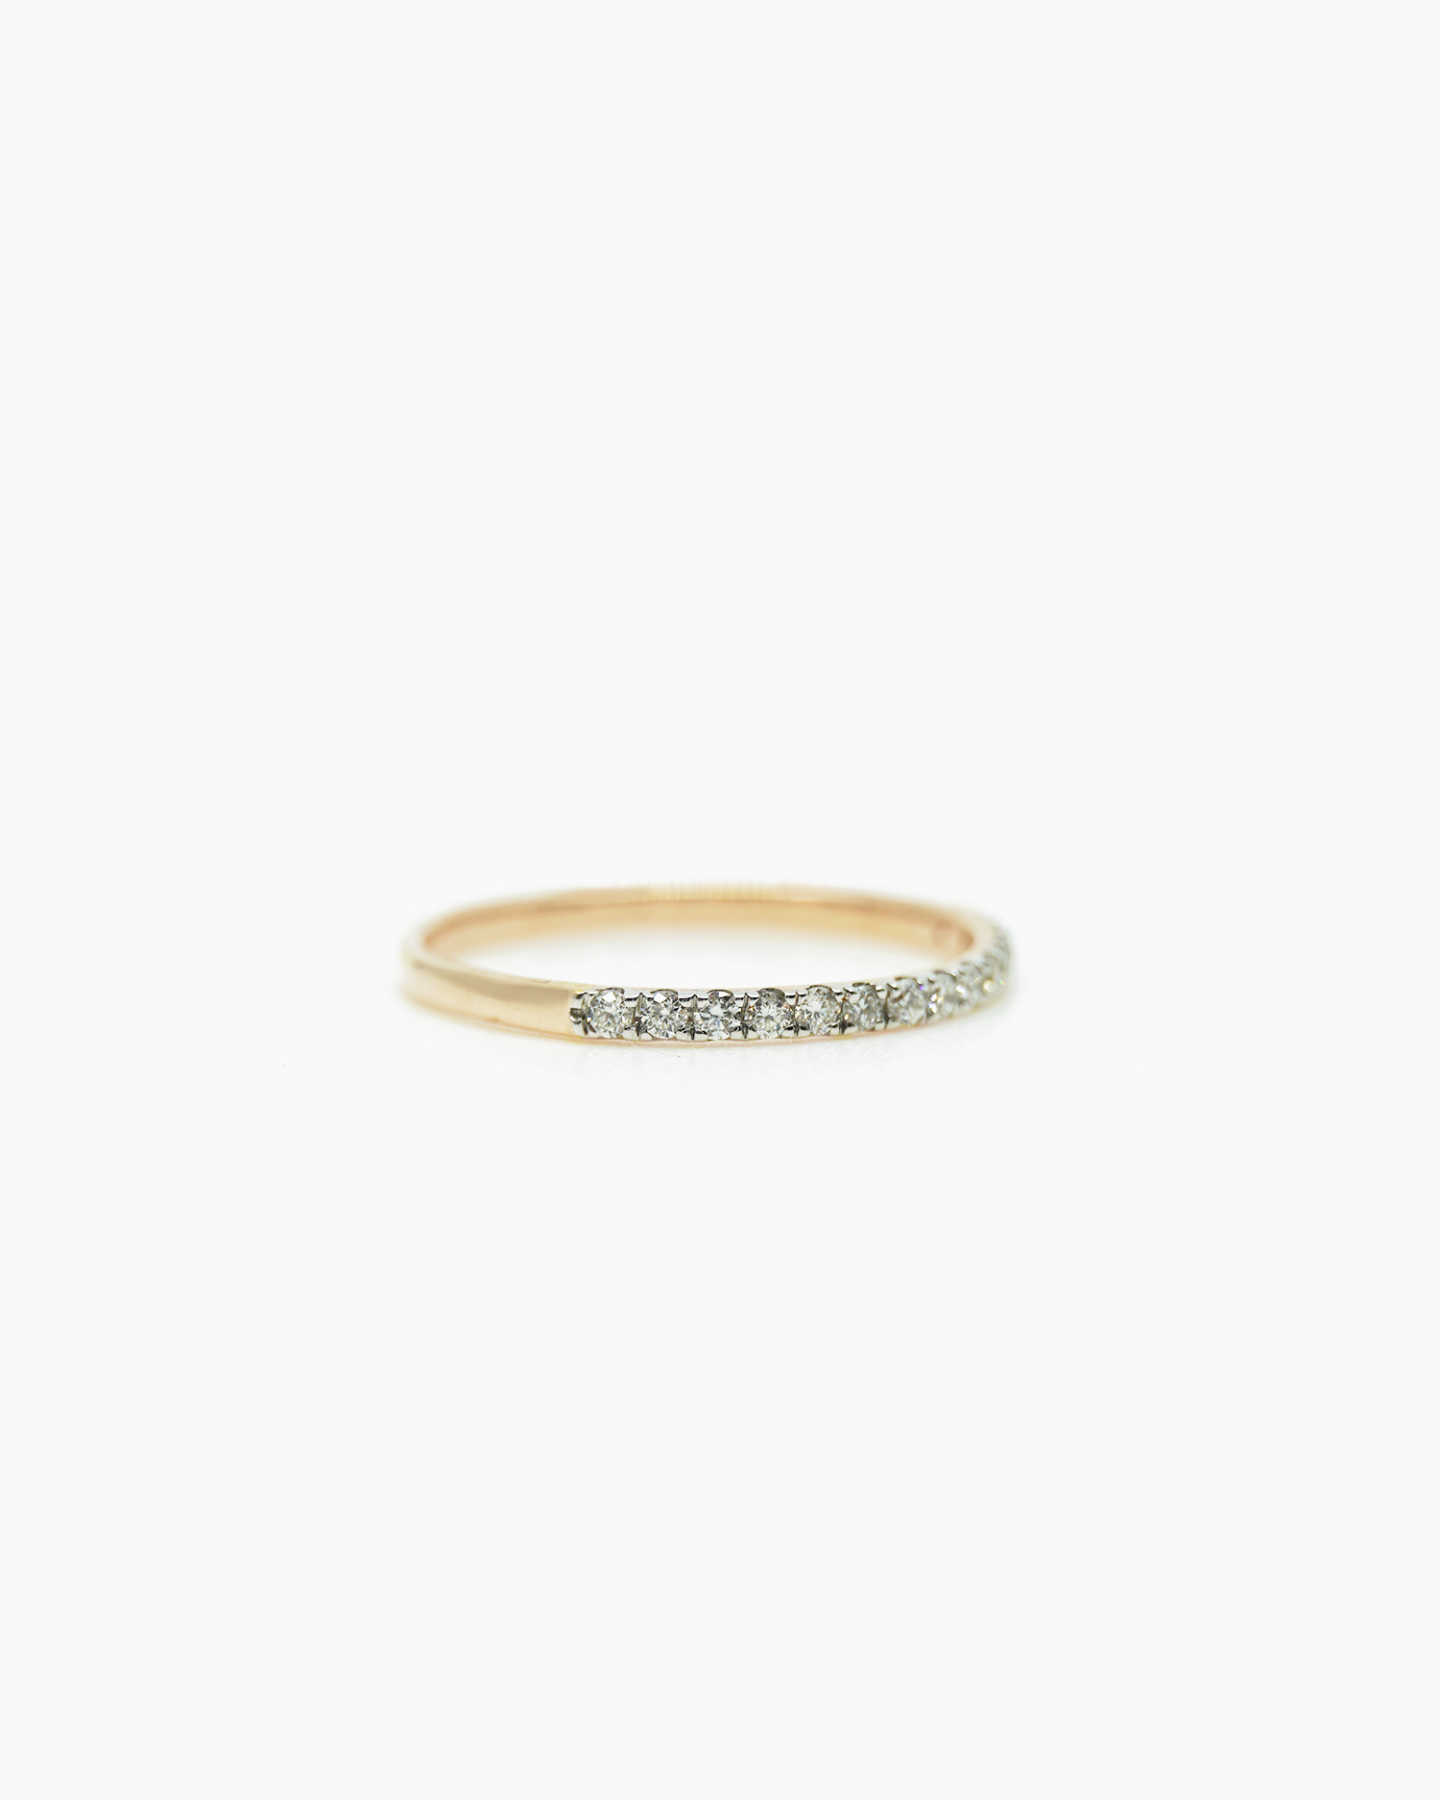 Diamond Wedding Band - undefined - 1 - Thumbnail